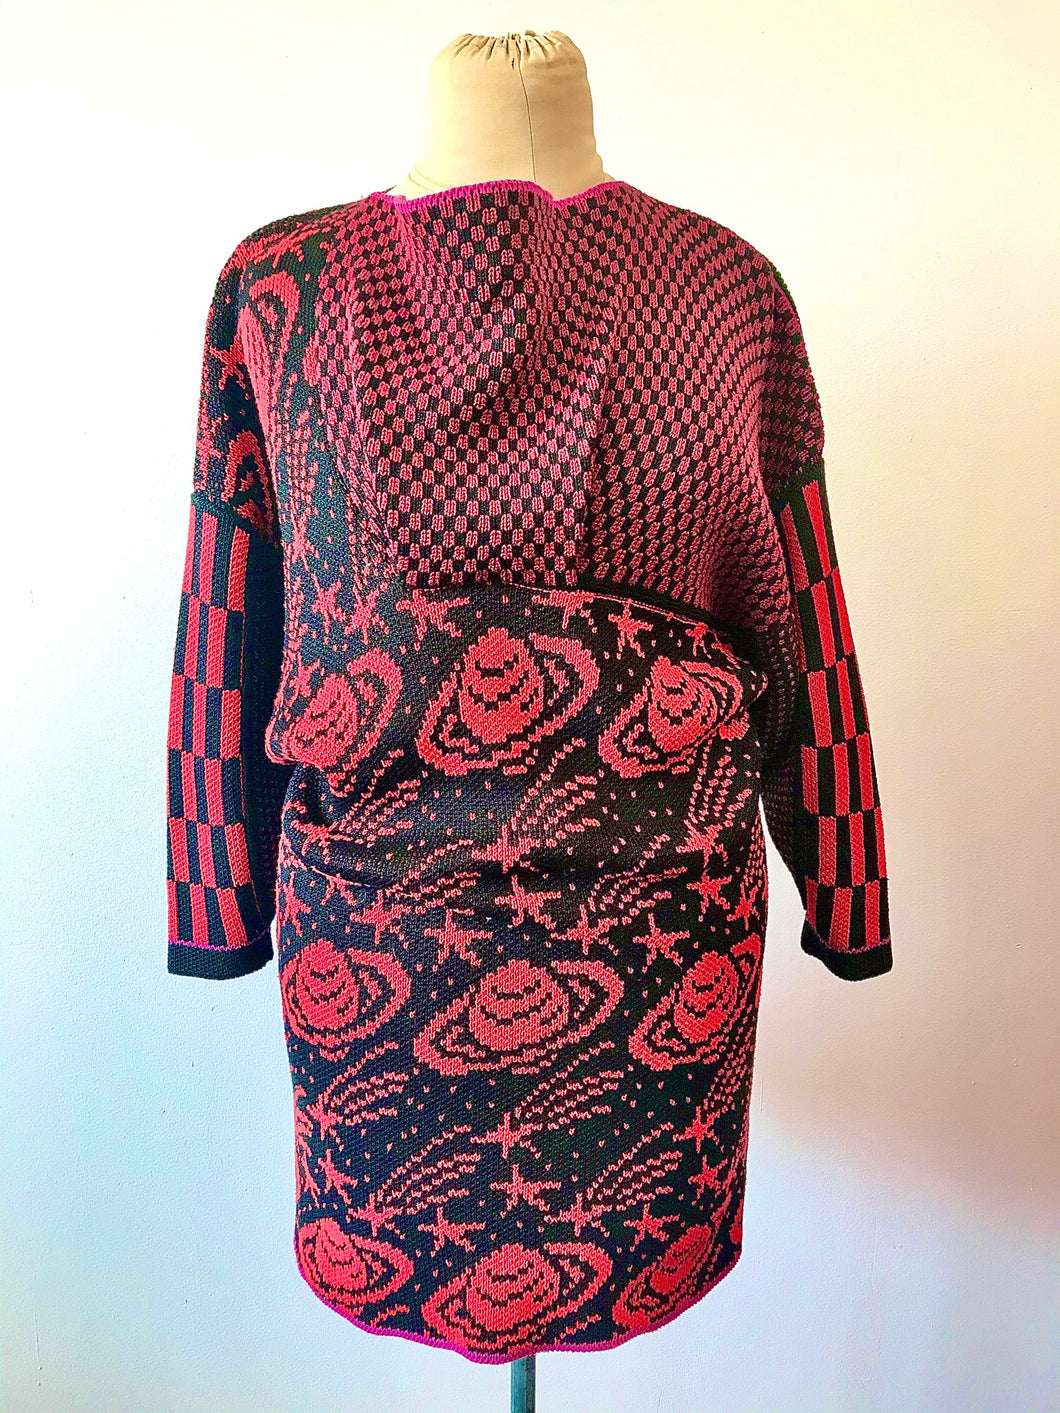 1980's SUMMA Design Planetary Knit Tunic